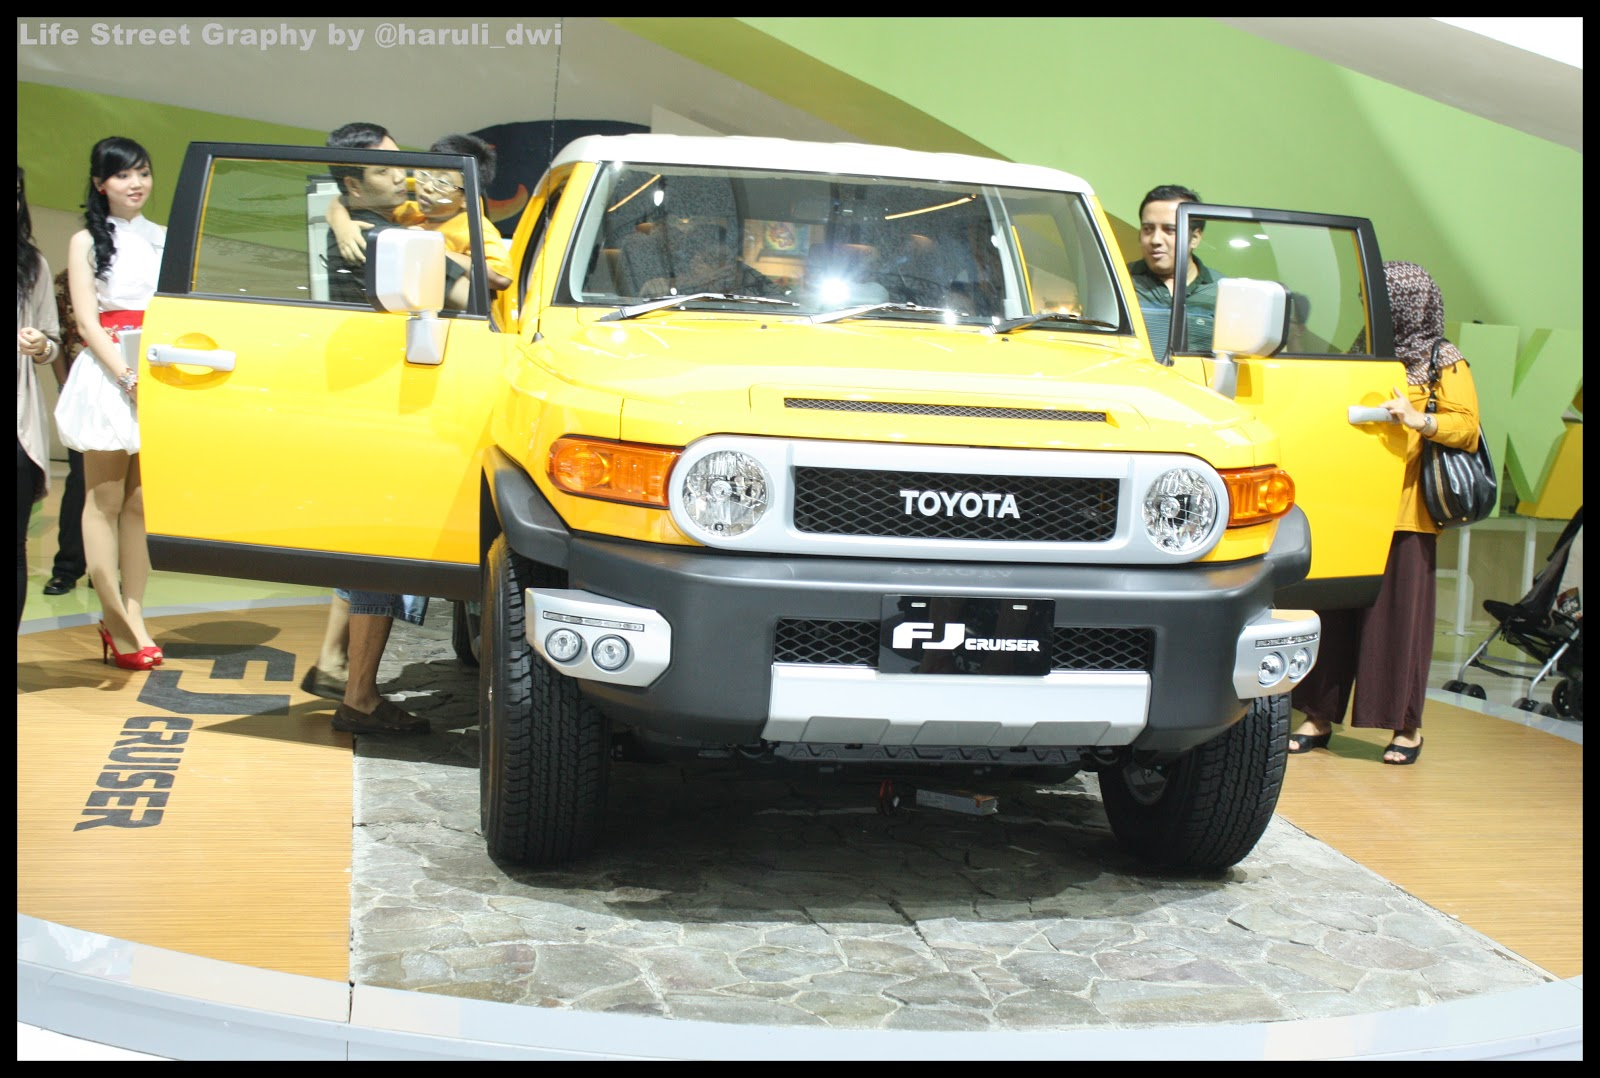 iims 2012 toyota section life street graphy